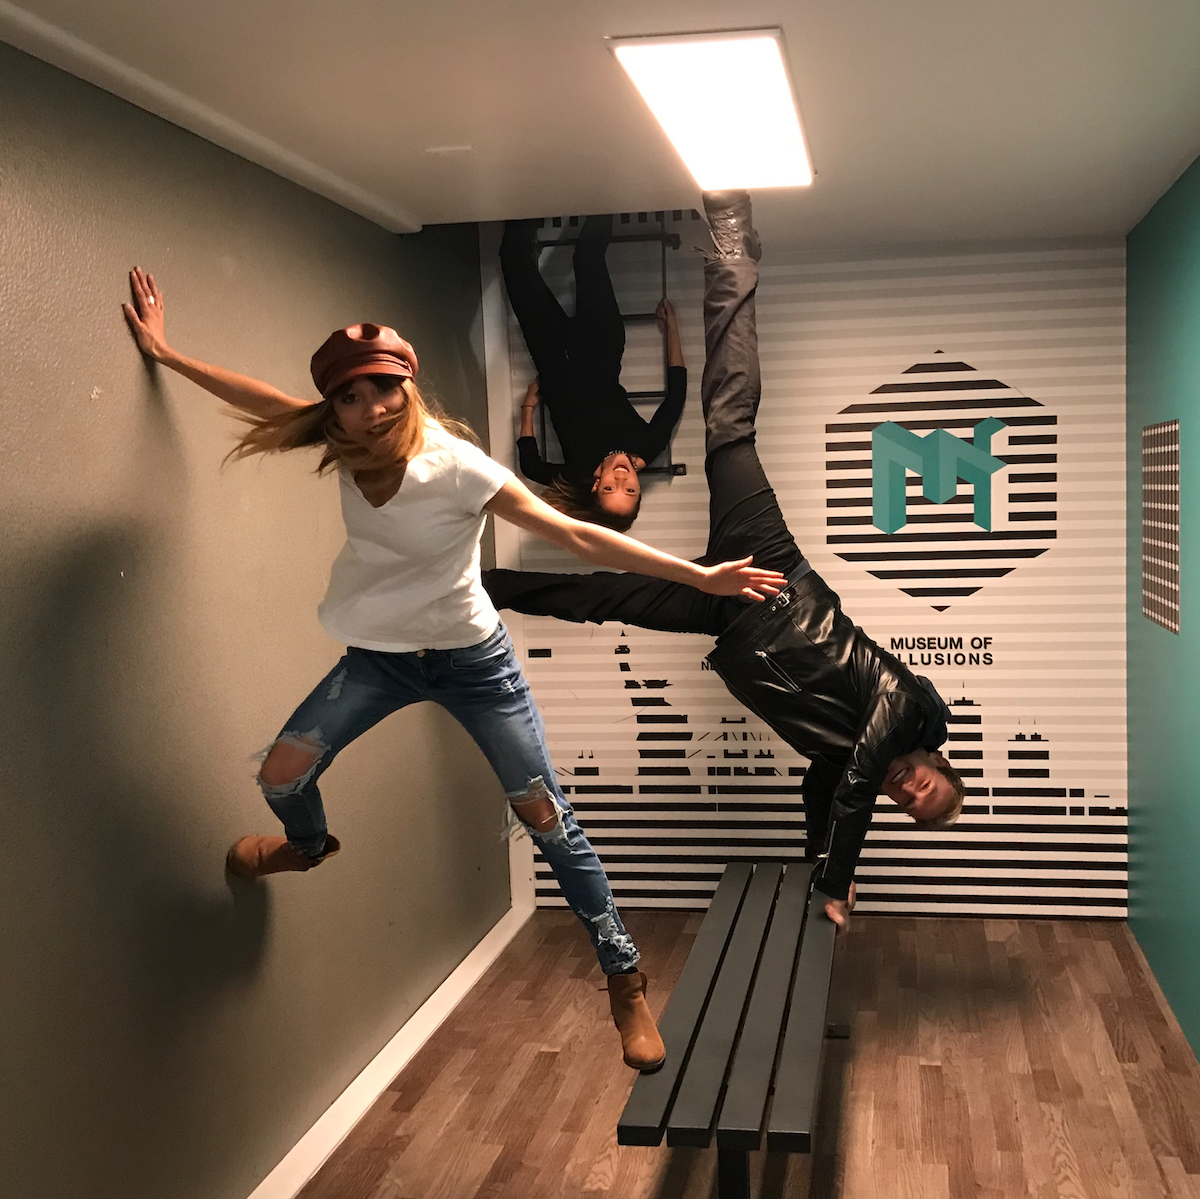 Nalani & Sarina with Derek Brad Museum of Illusions New York, NY March 3, 2019